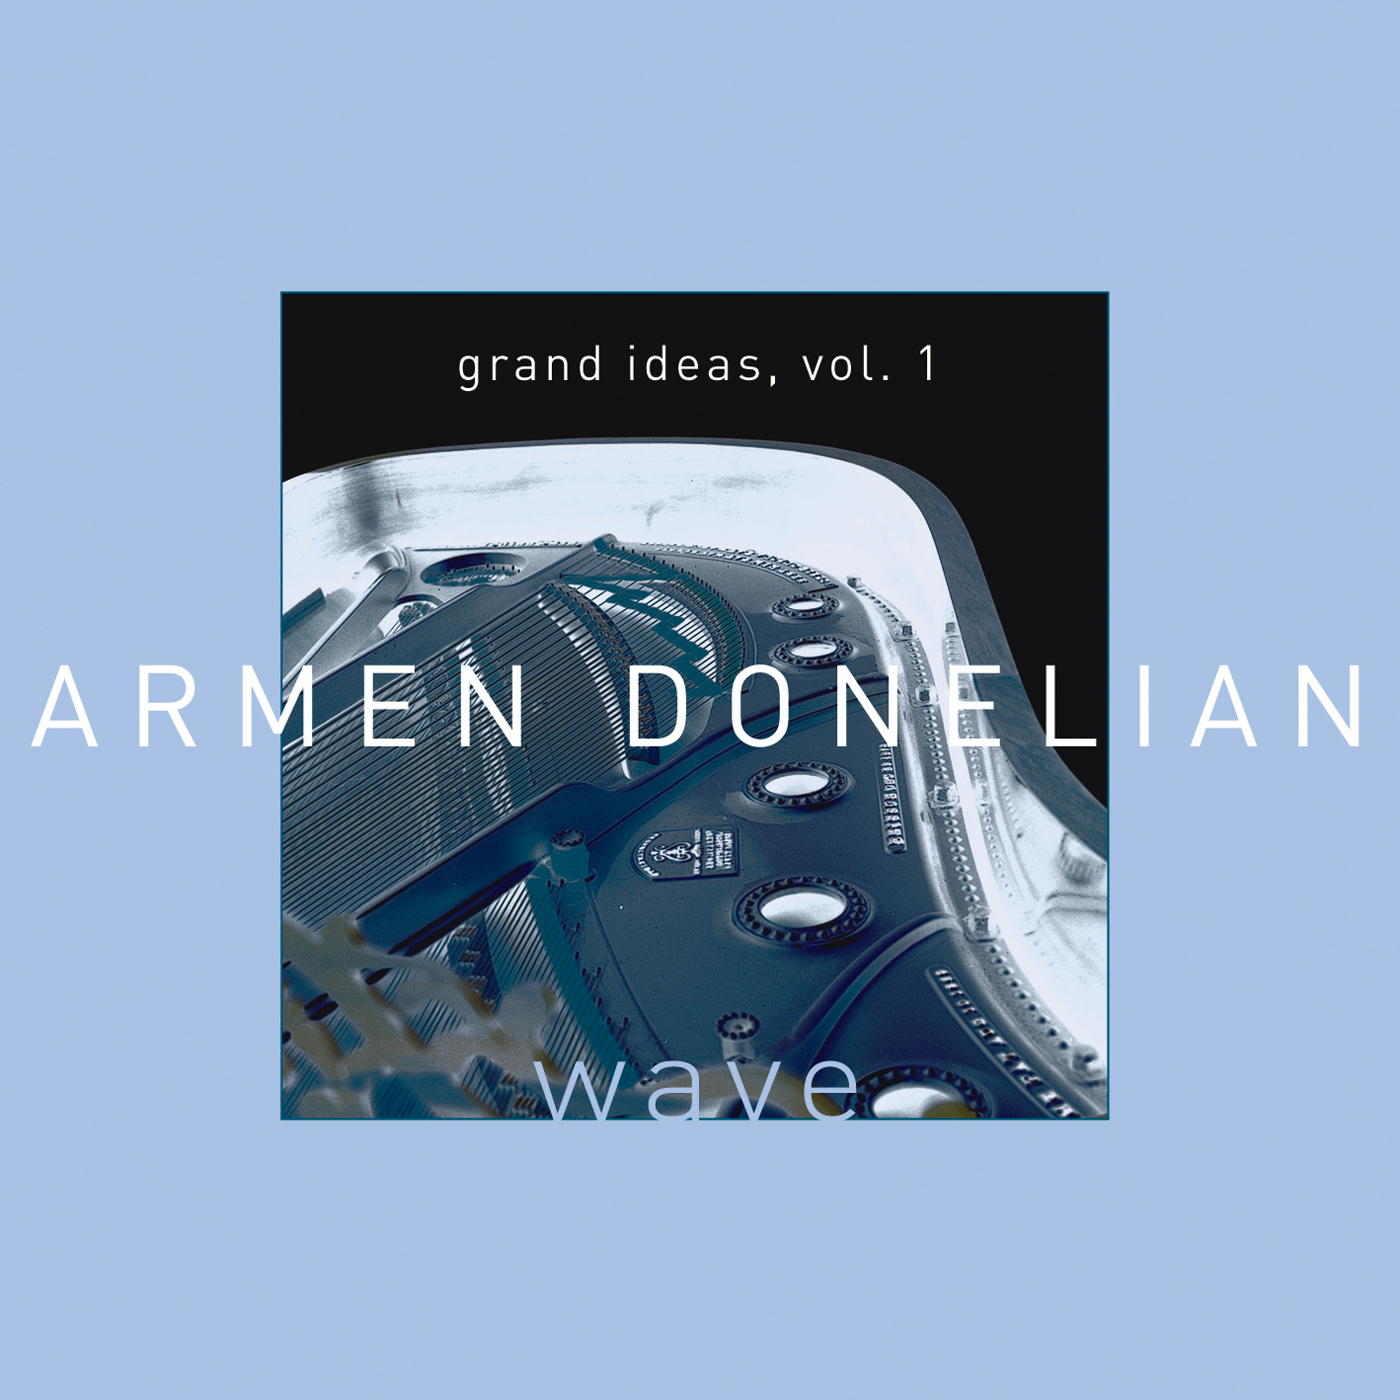 Wave by Armen Donelian cover